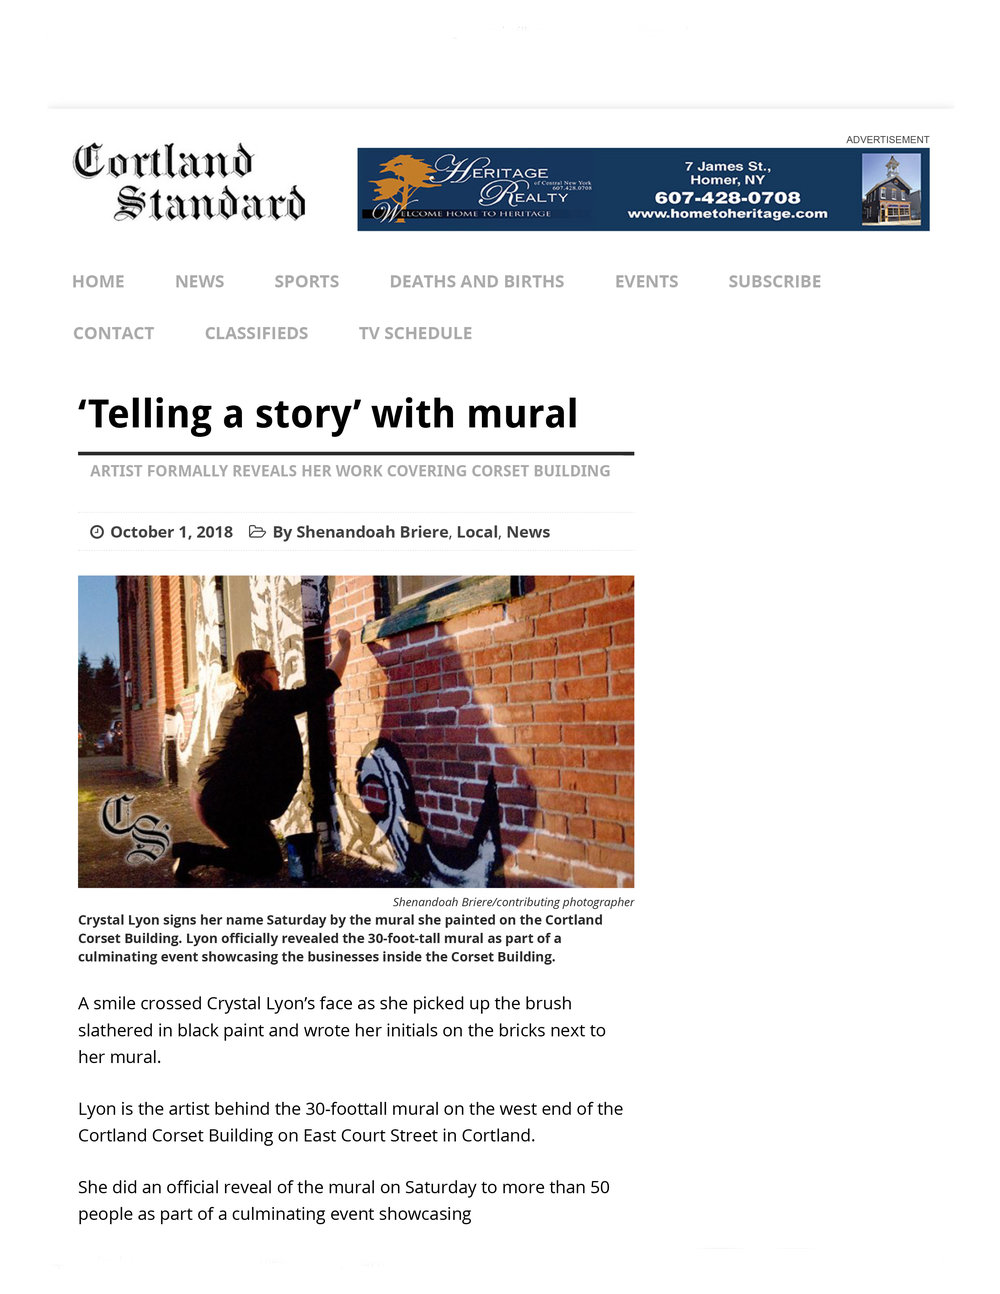 'Telling a story' with mural – Cortland Standard-1.jpg